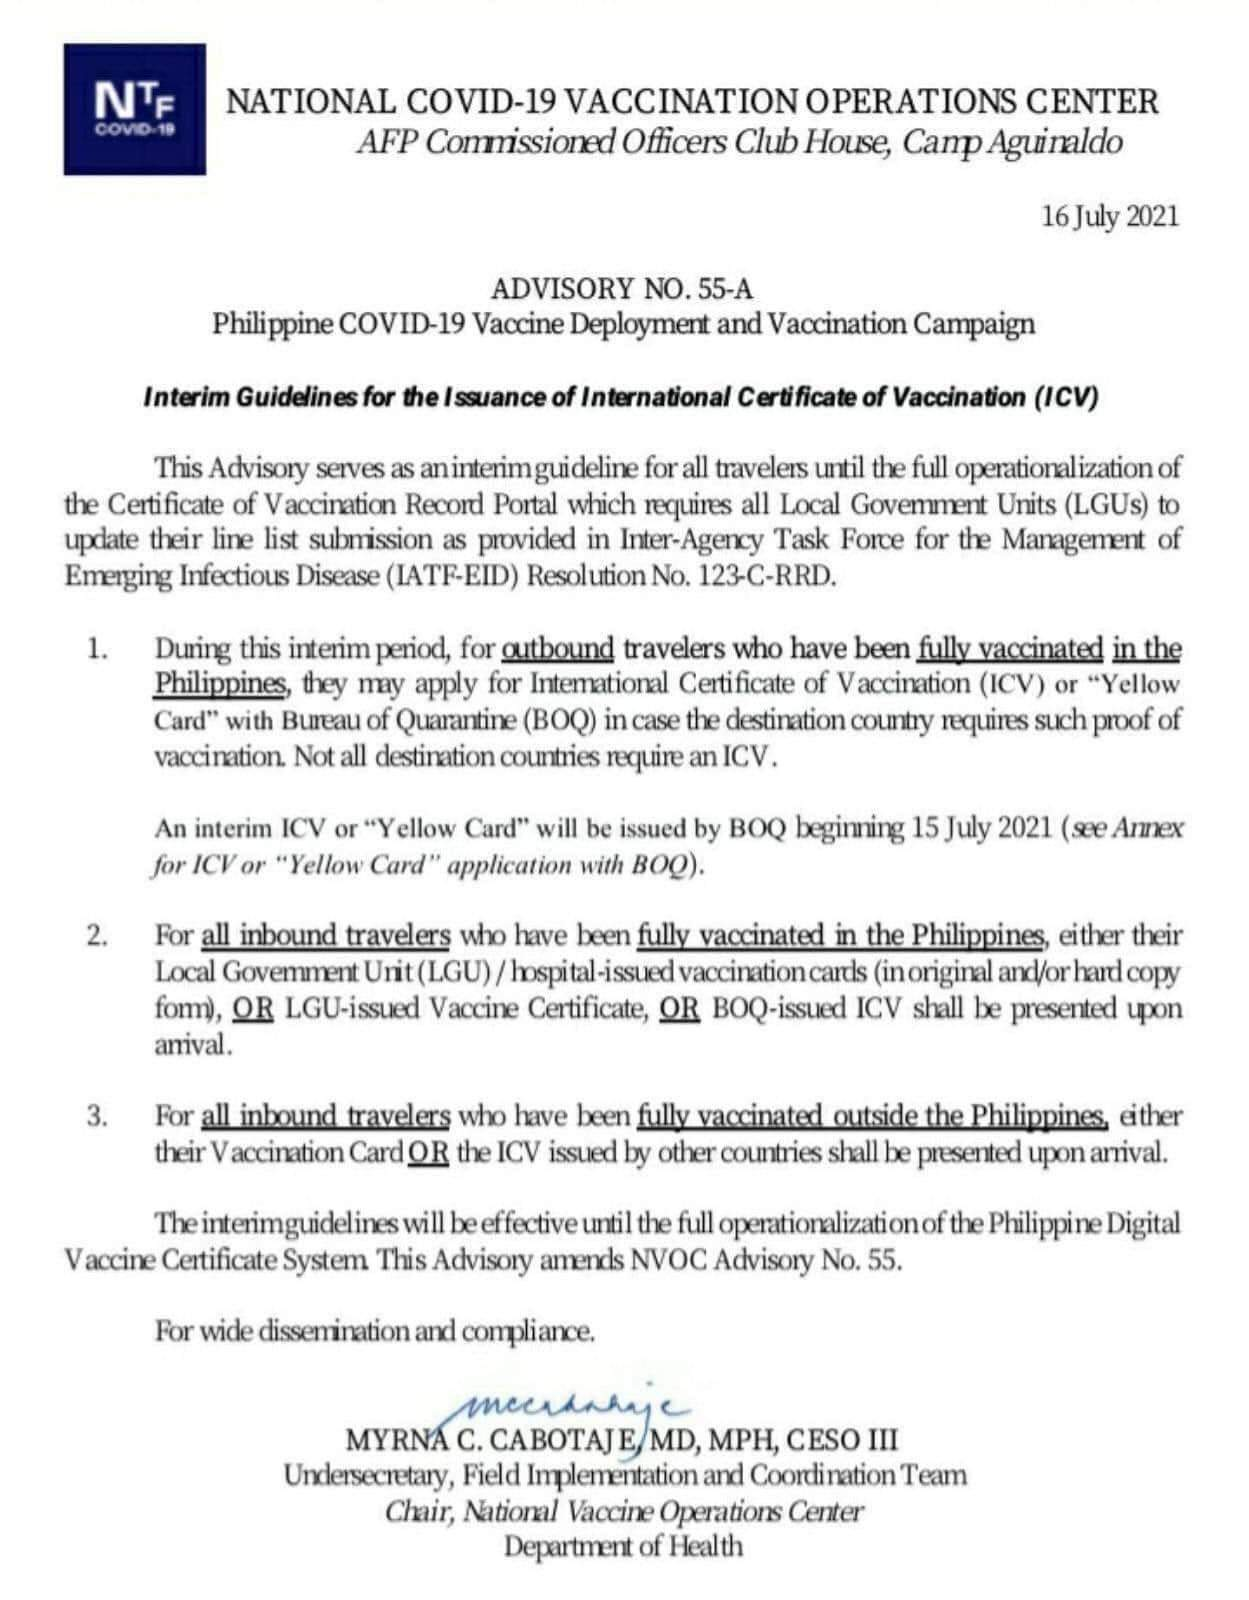 """Interim Guidelines for the Issuance of International Certificate of Vaccination (ICV) or """"Yellow Card"""" with the Bureau of Quarantine (BOQ)"""